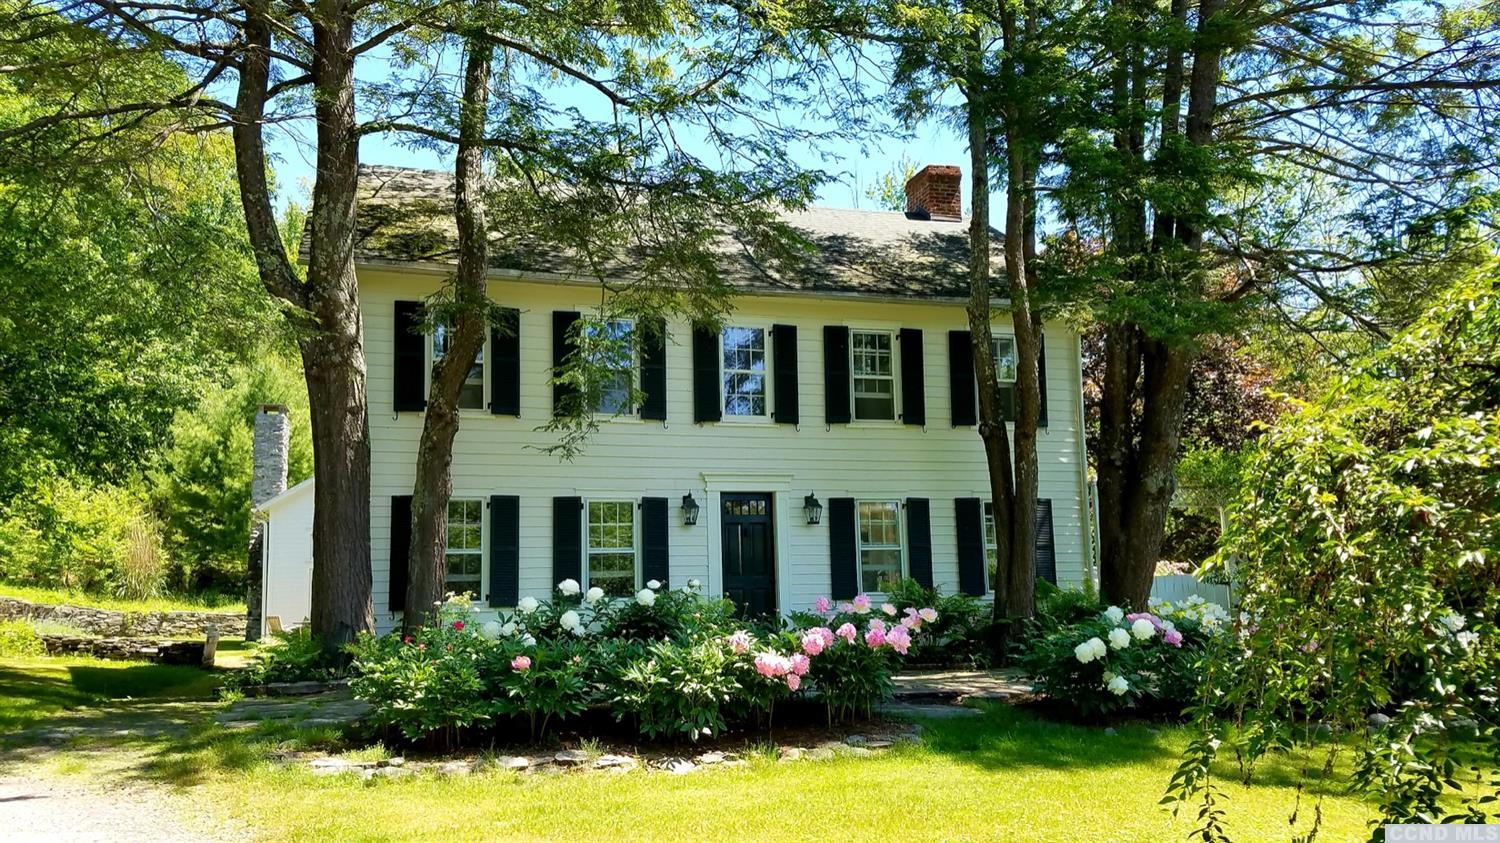 Listing courtesy of Berkshire Hathaway Home Services Hudson Valley Properties